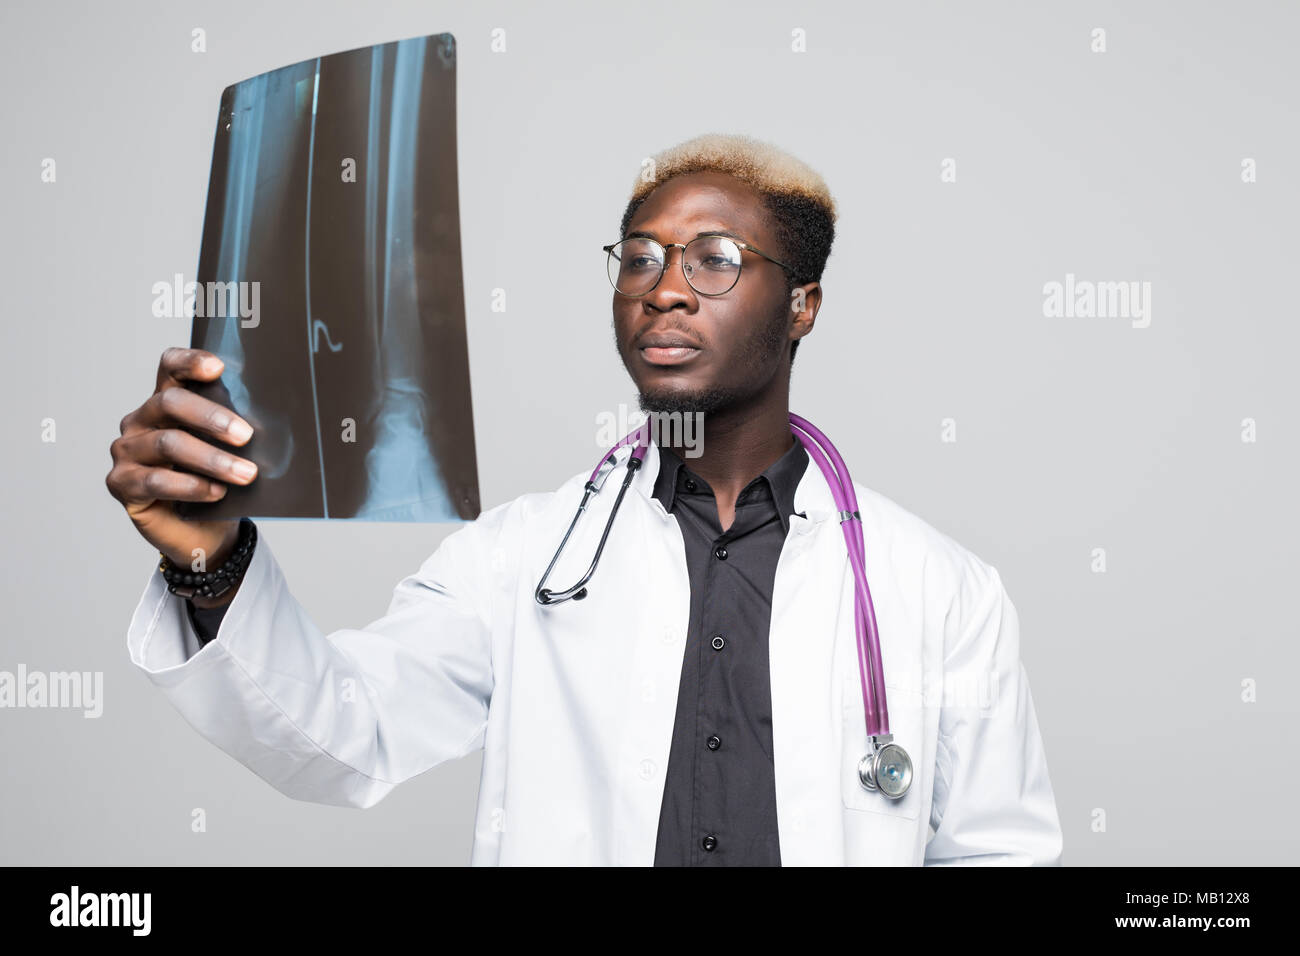 Portrait of a doctor looking at a radiography - Stock Image